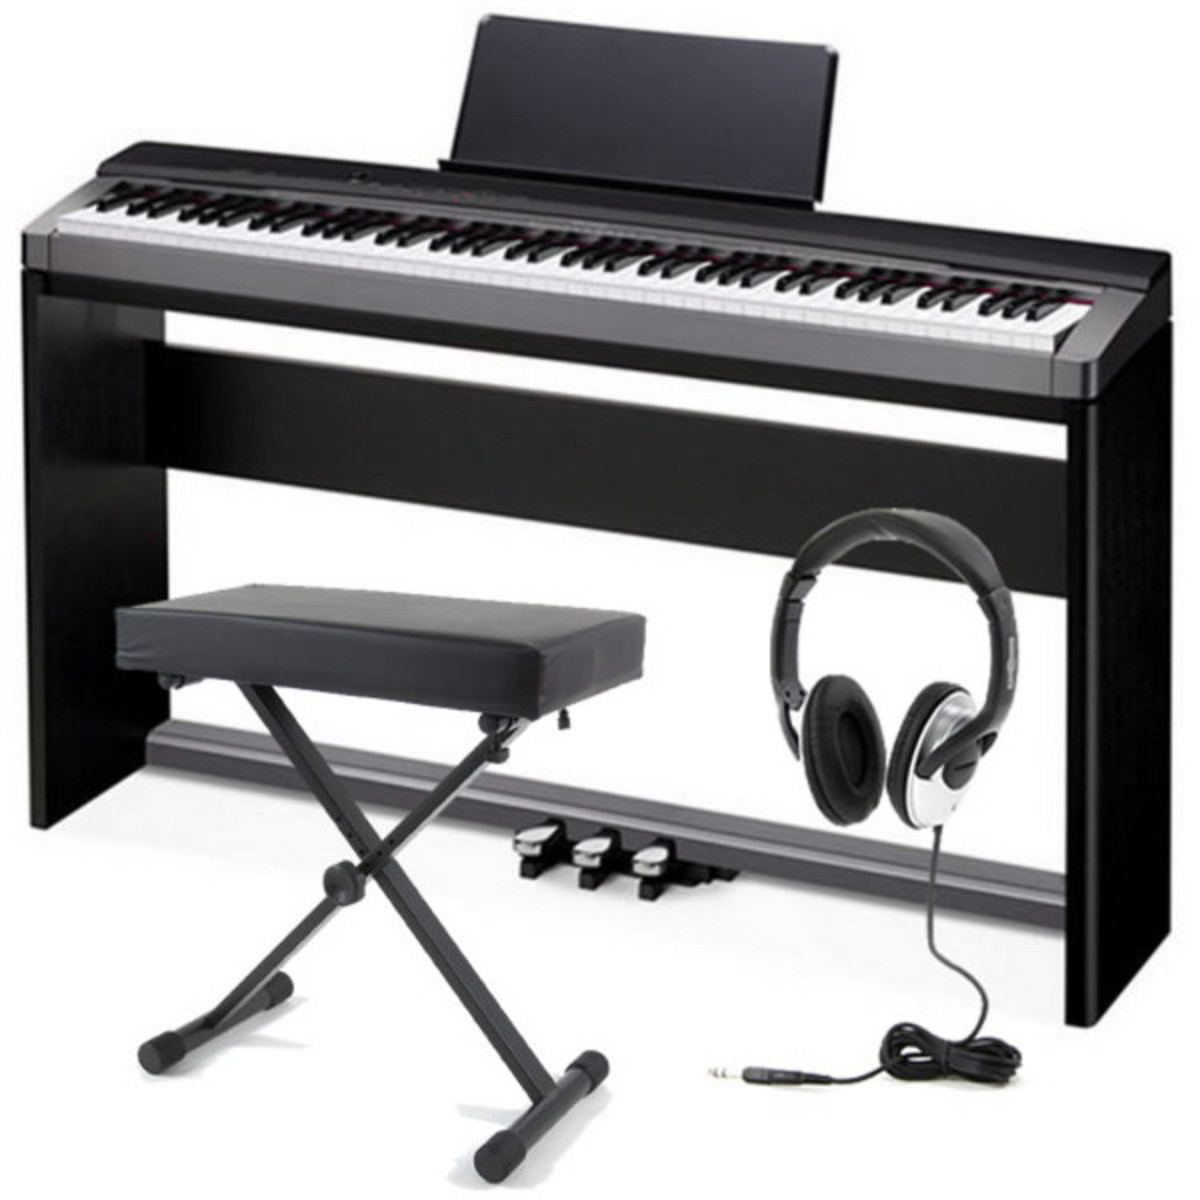 disc casio privia px 130 digital piano with stand bench and pedalboard at gear4music. Black Bedroom Furniture Sets. Home Design Ideas